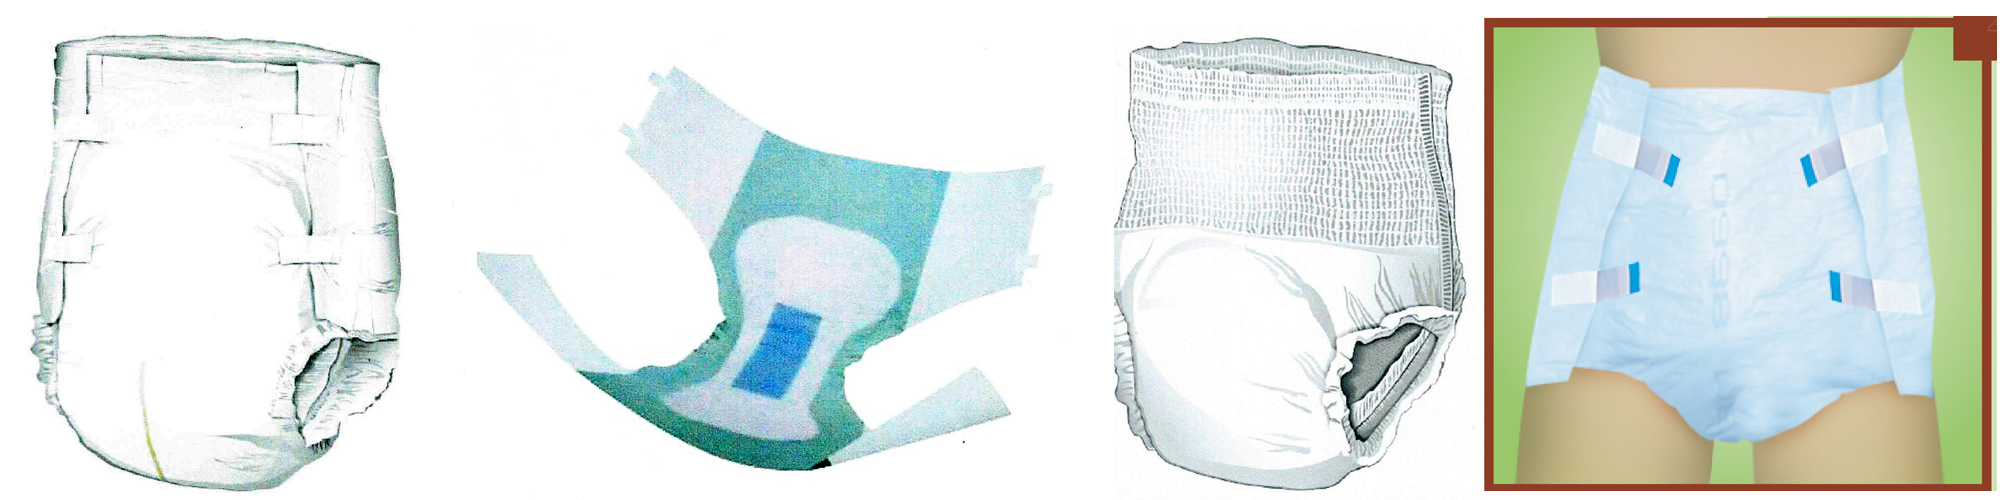 Types of Adult Disposable Briefs and Undergarments